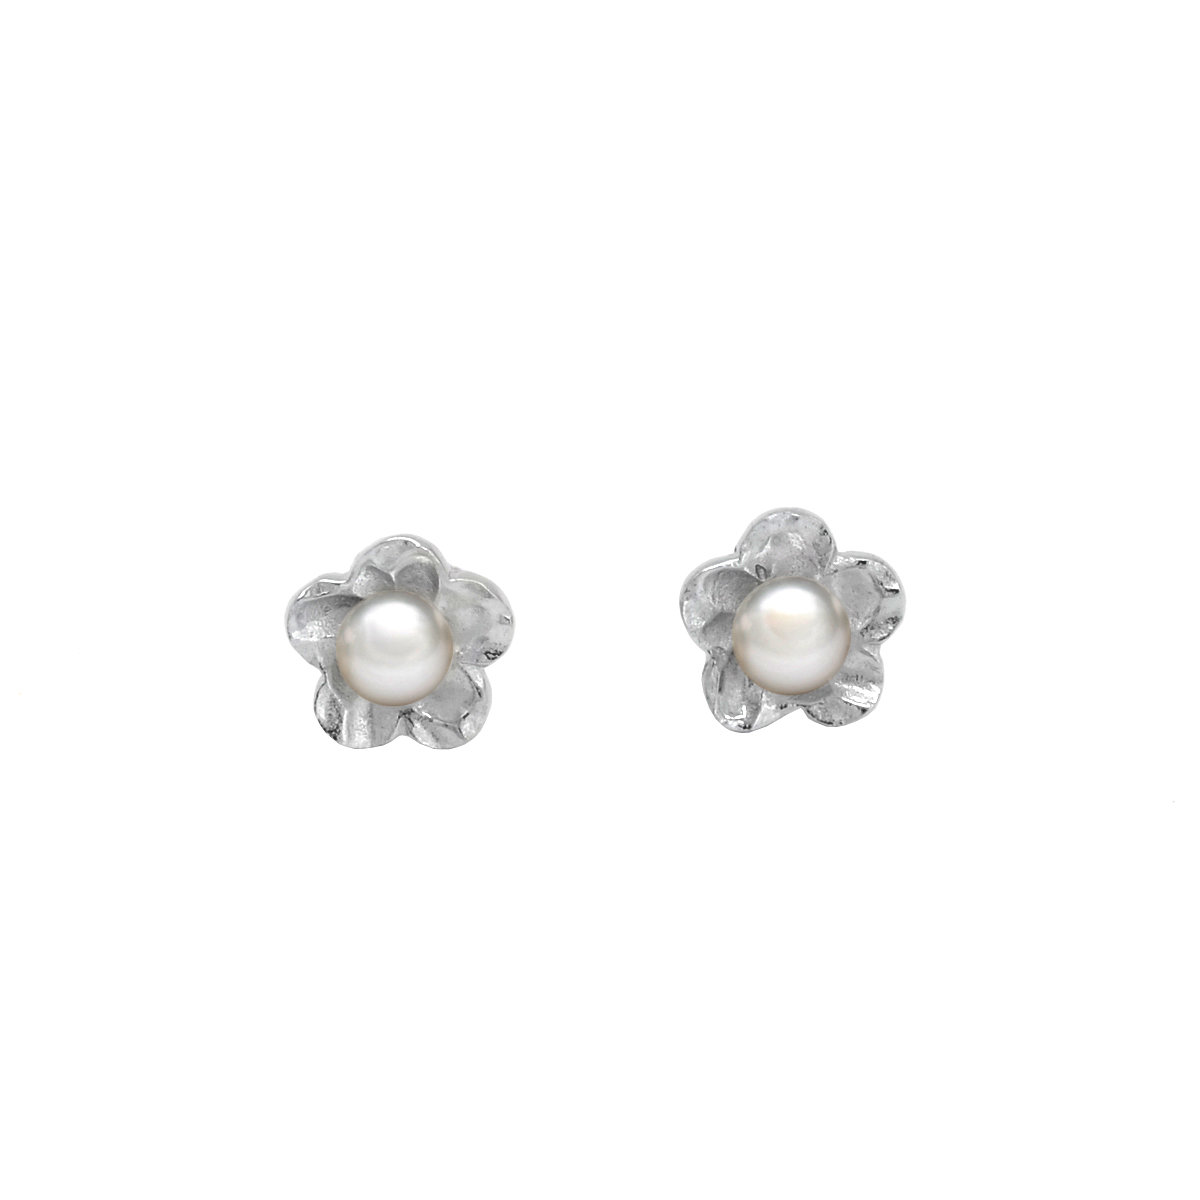 Sakura- 5-6mm Cultured fresh water pearl with sterling silver earring